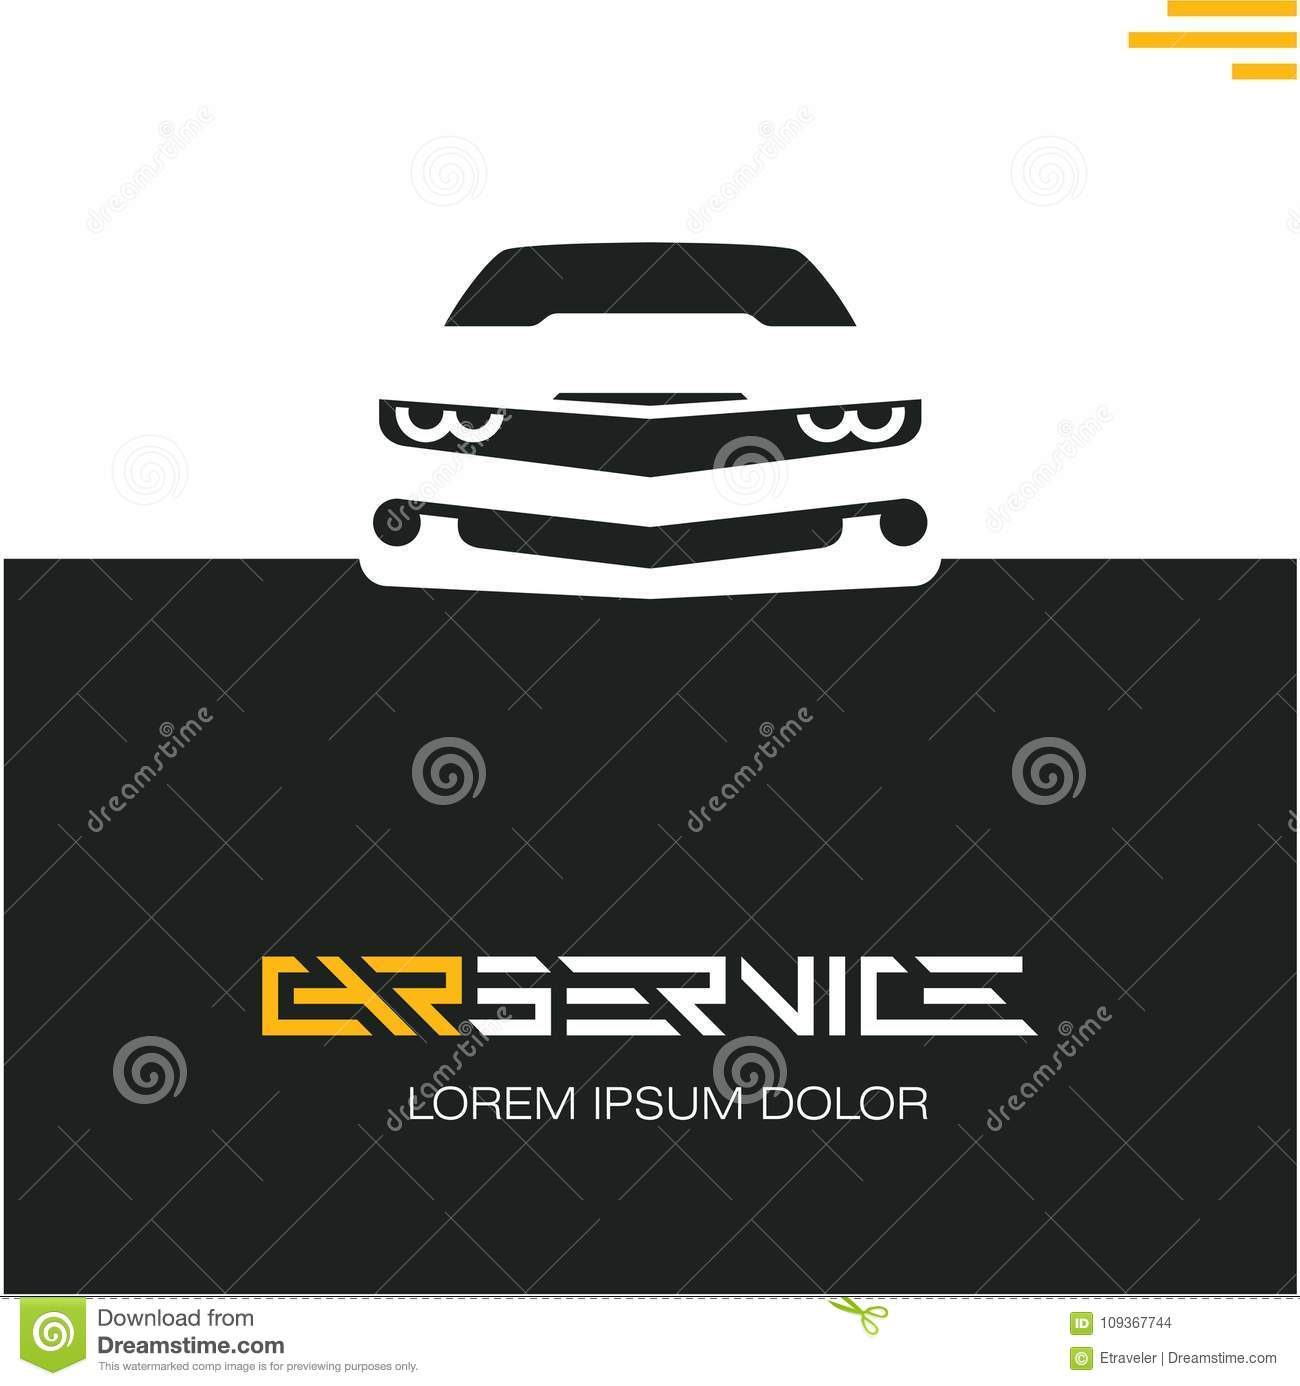 Garage Design Template Car Service Poster Design Template Sports Car Stock Illustration